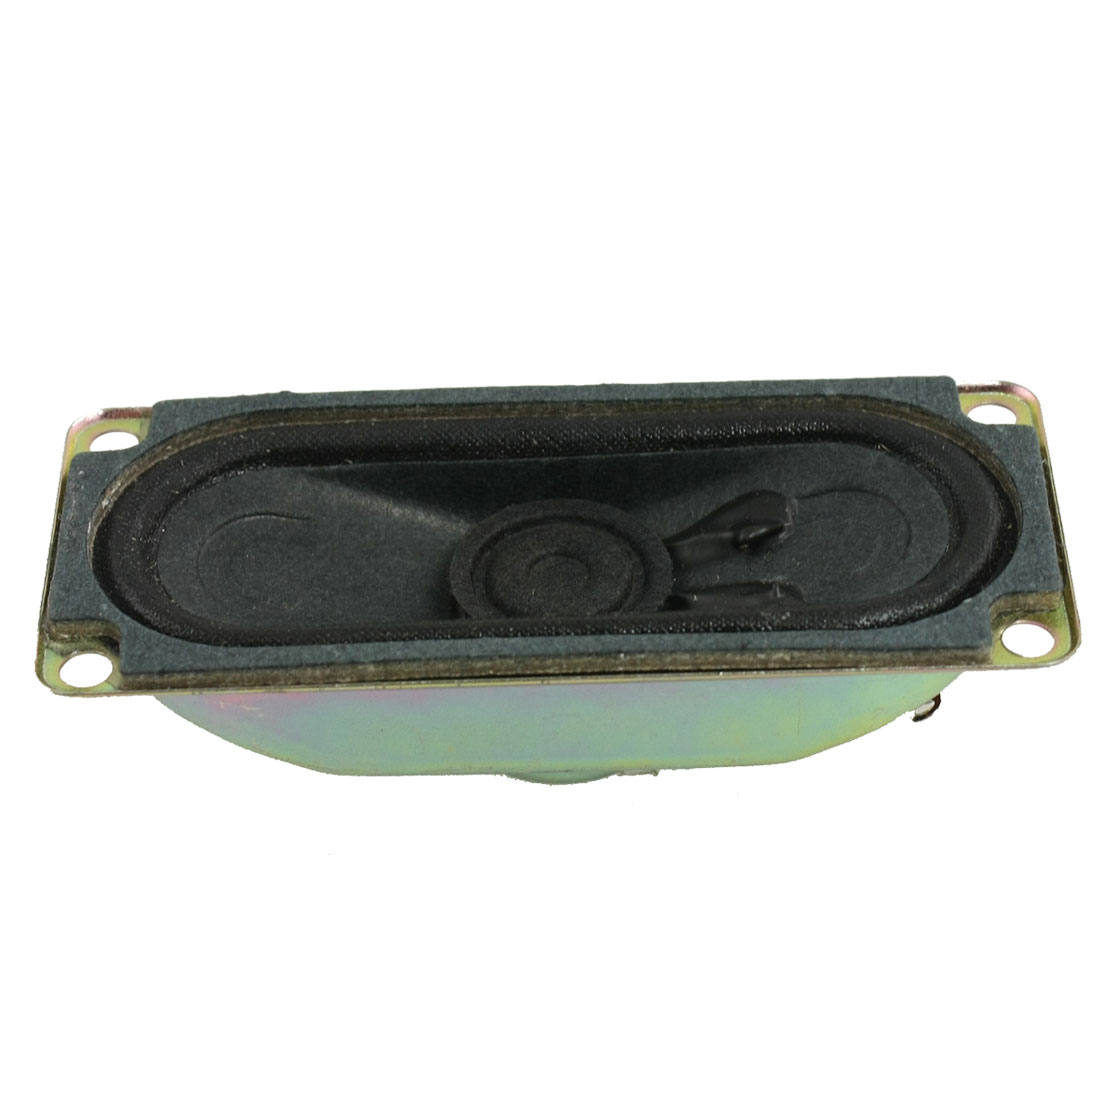 70mm x 30mm Rectangular Internal Magnet Speaker Tweeter Horn 8 Ohm 5W